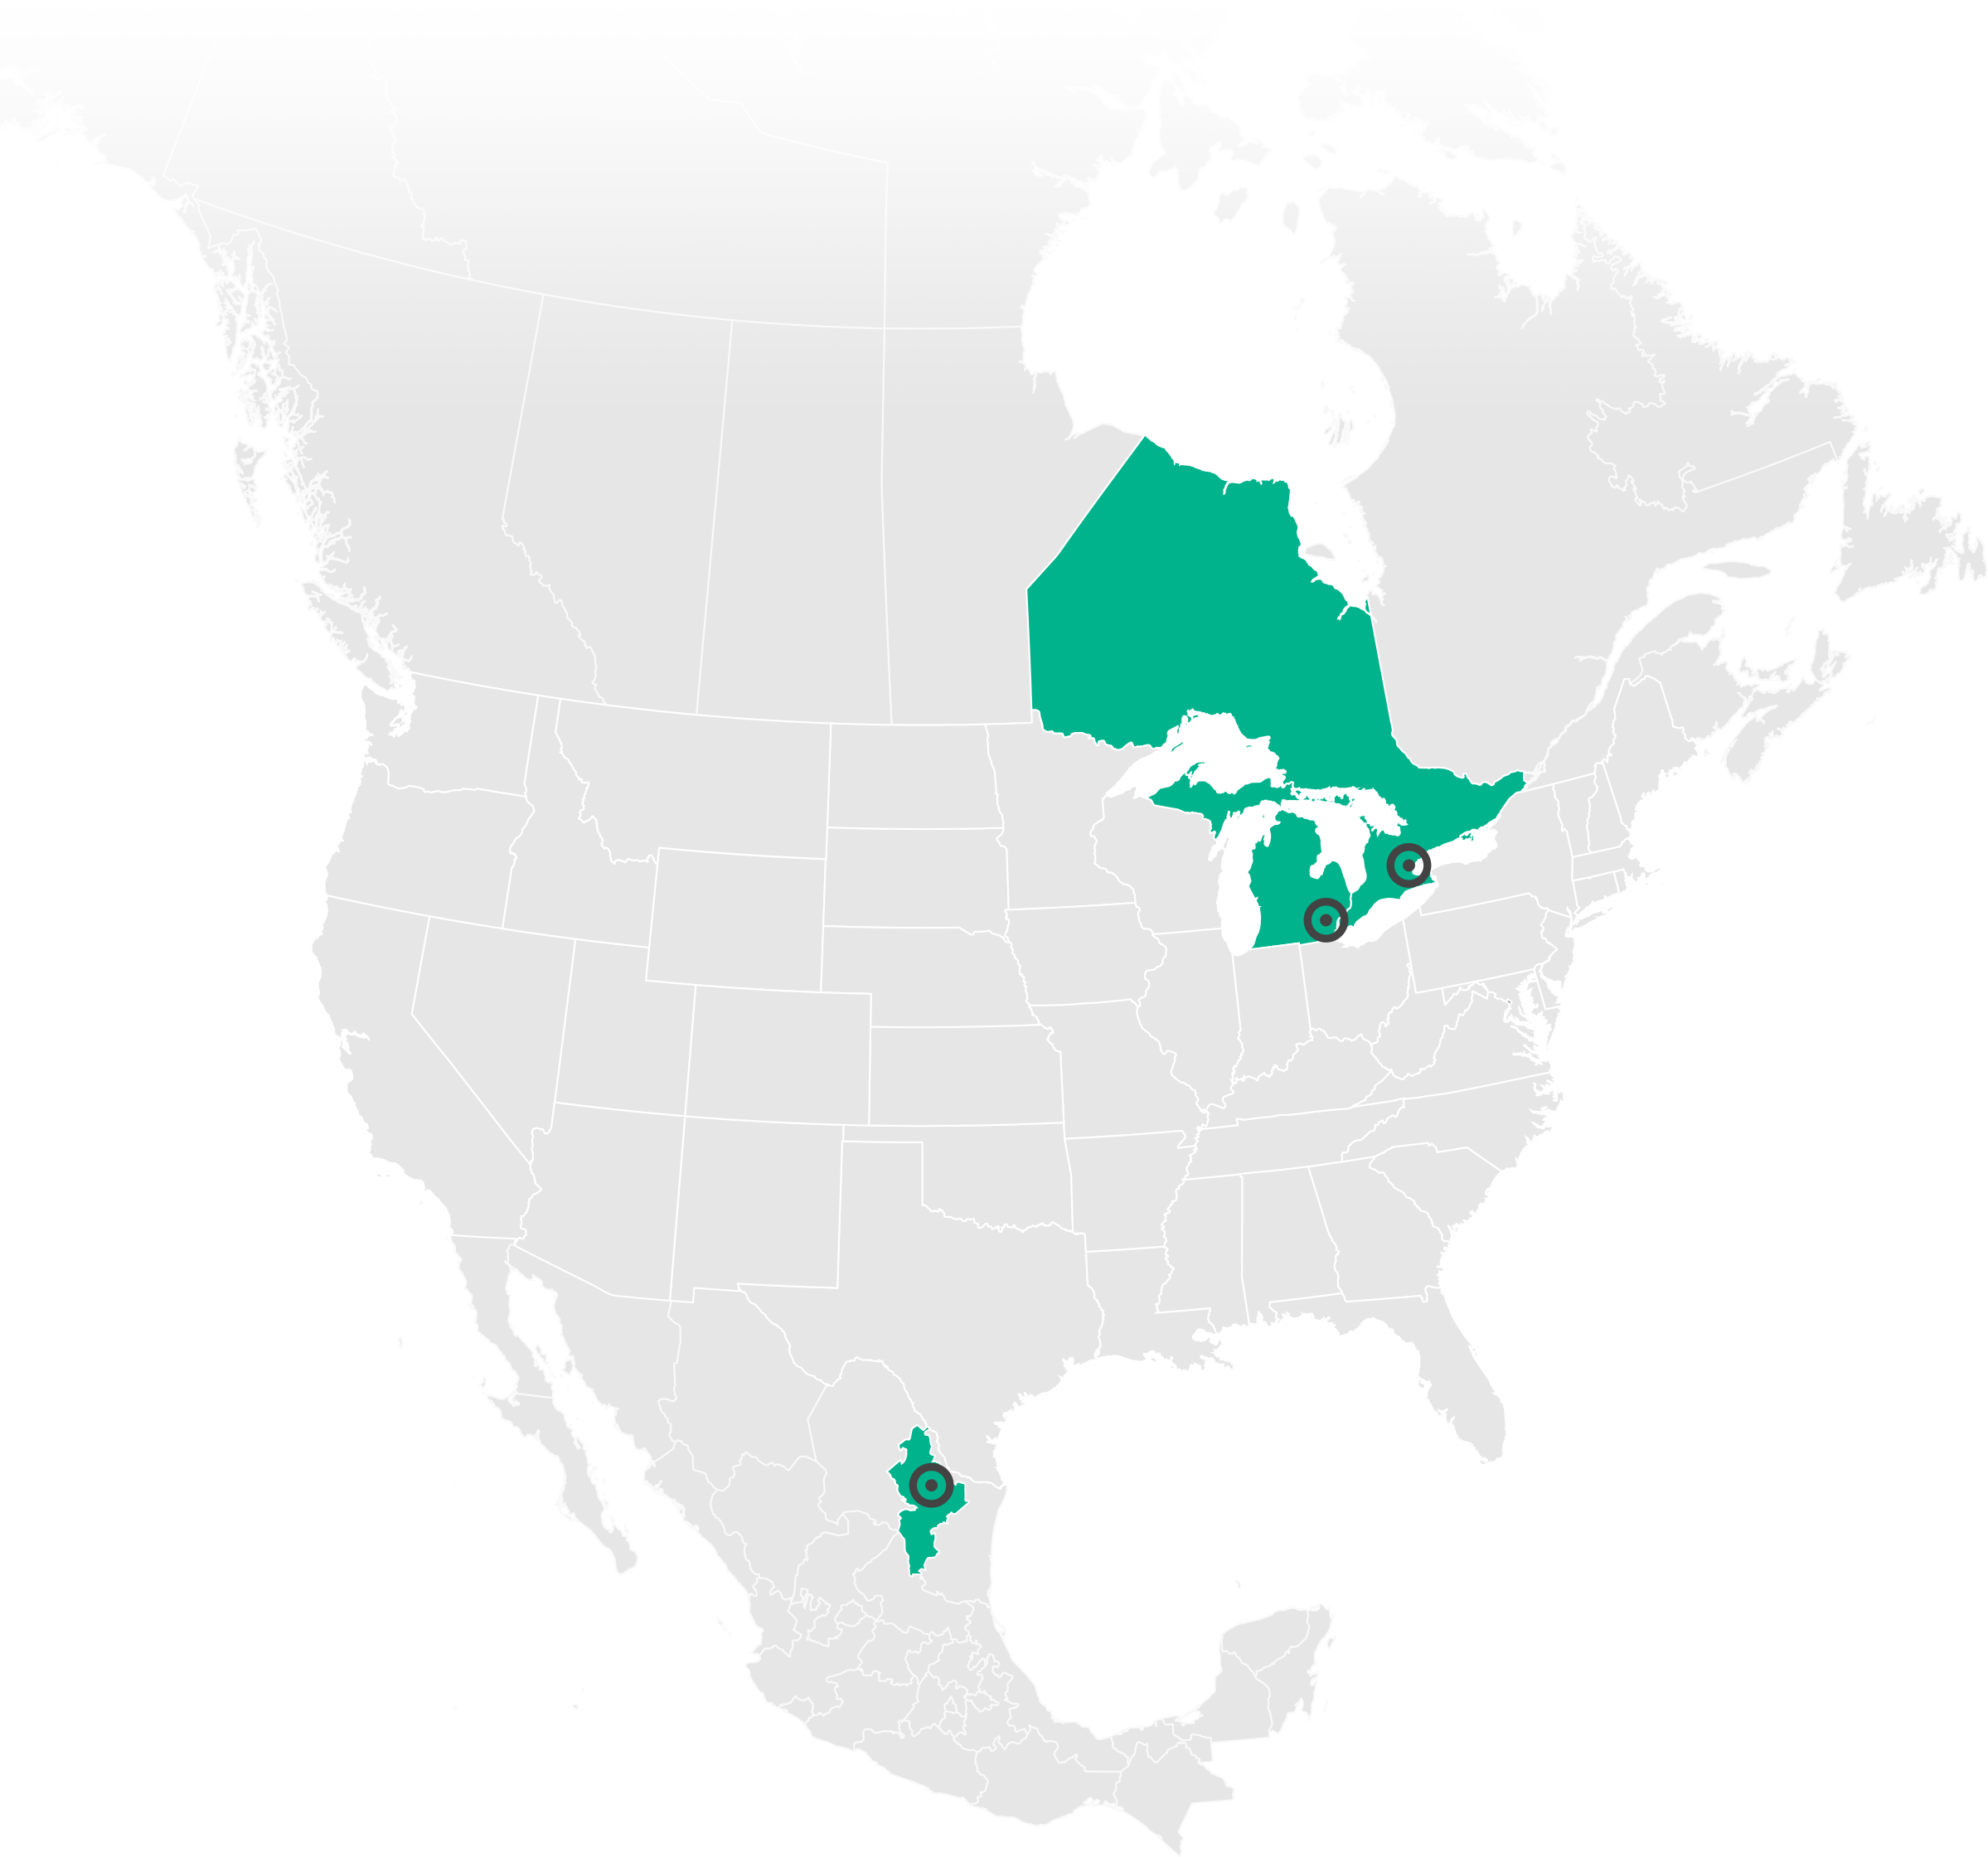 map of north america with locations indicated